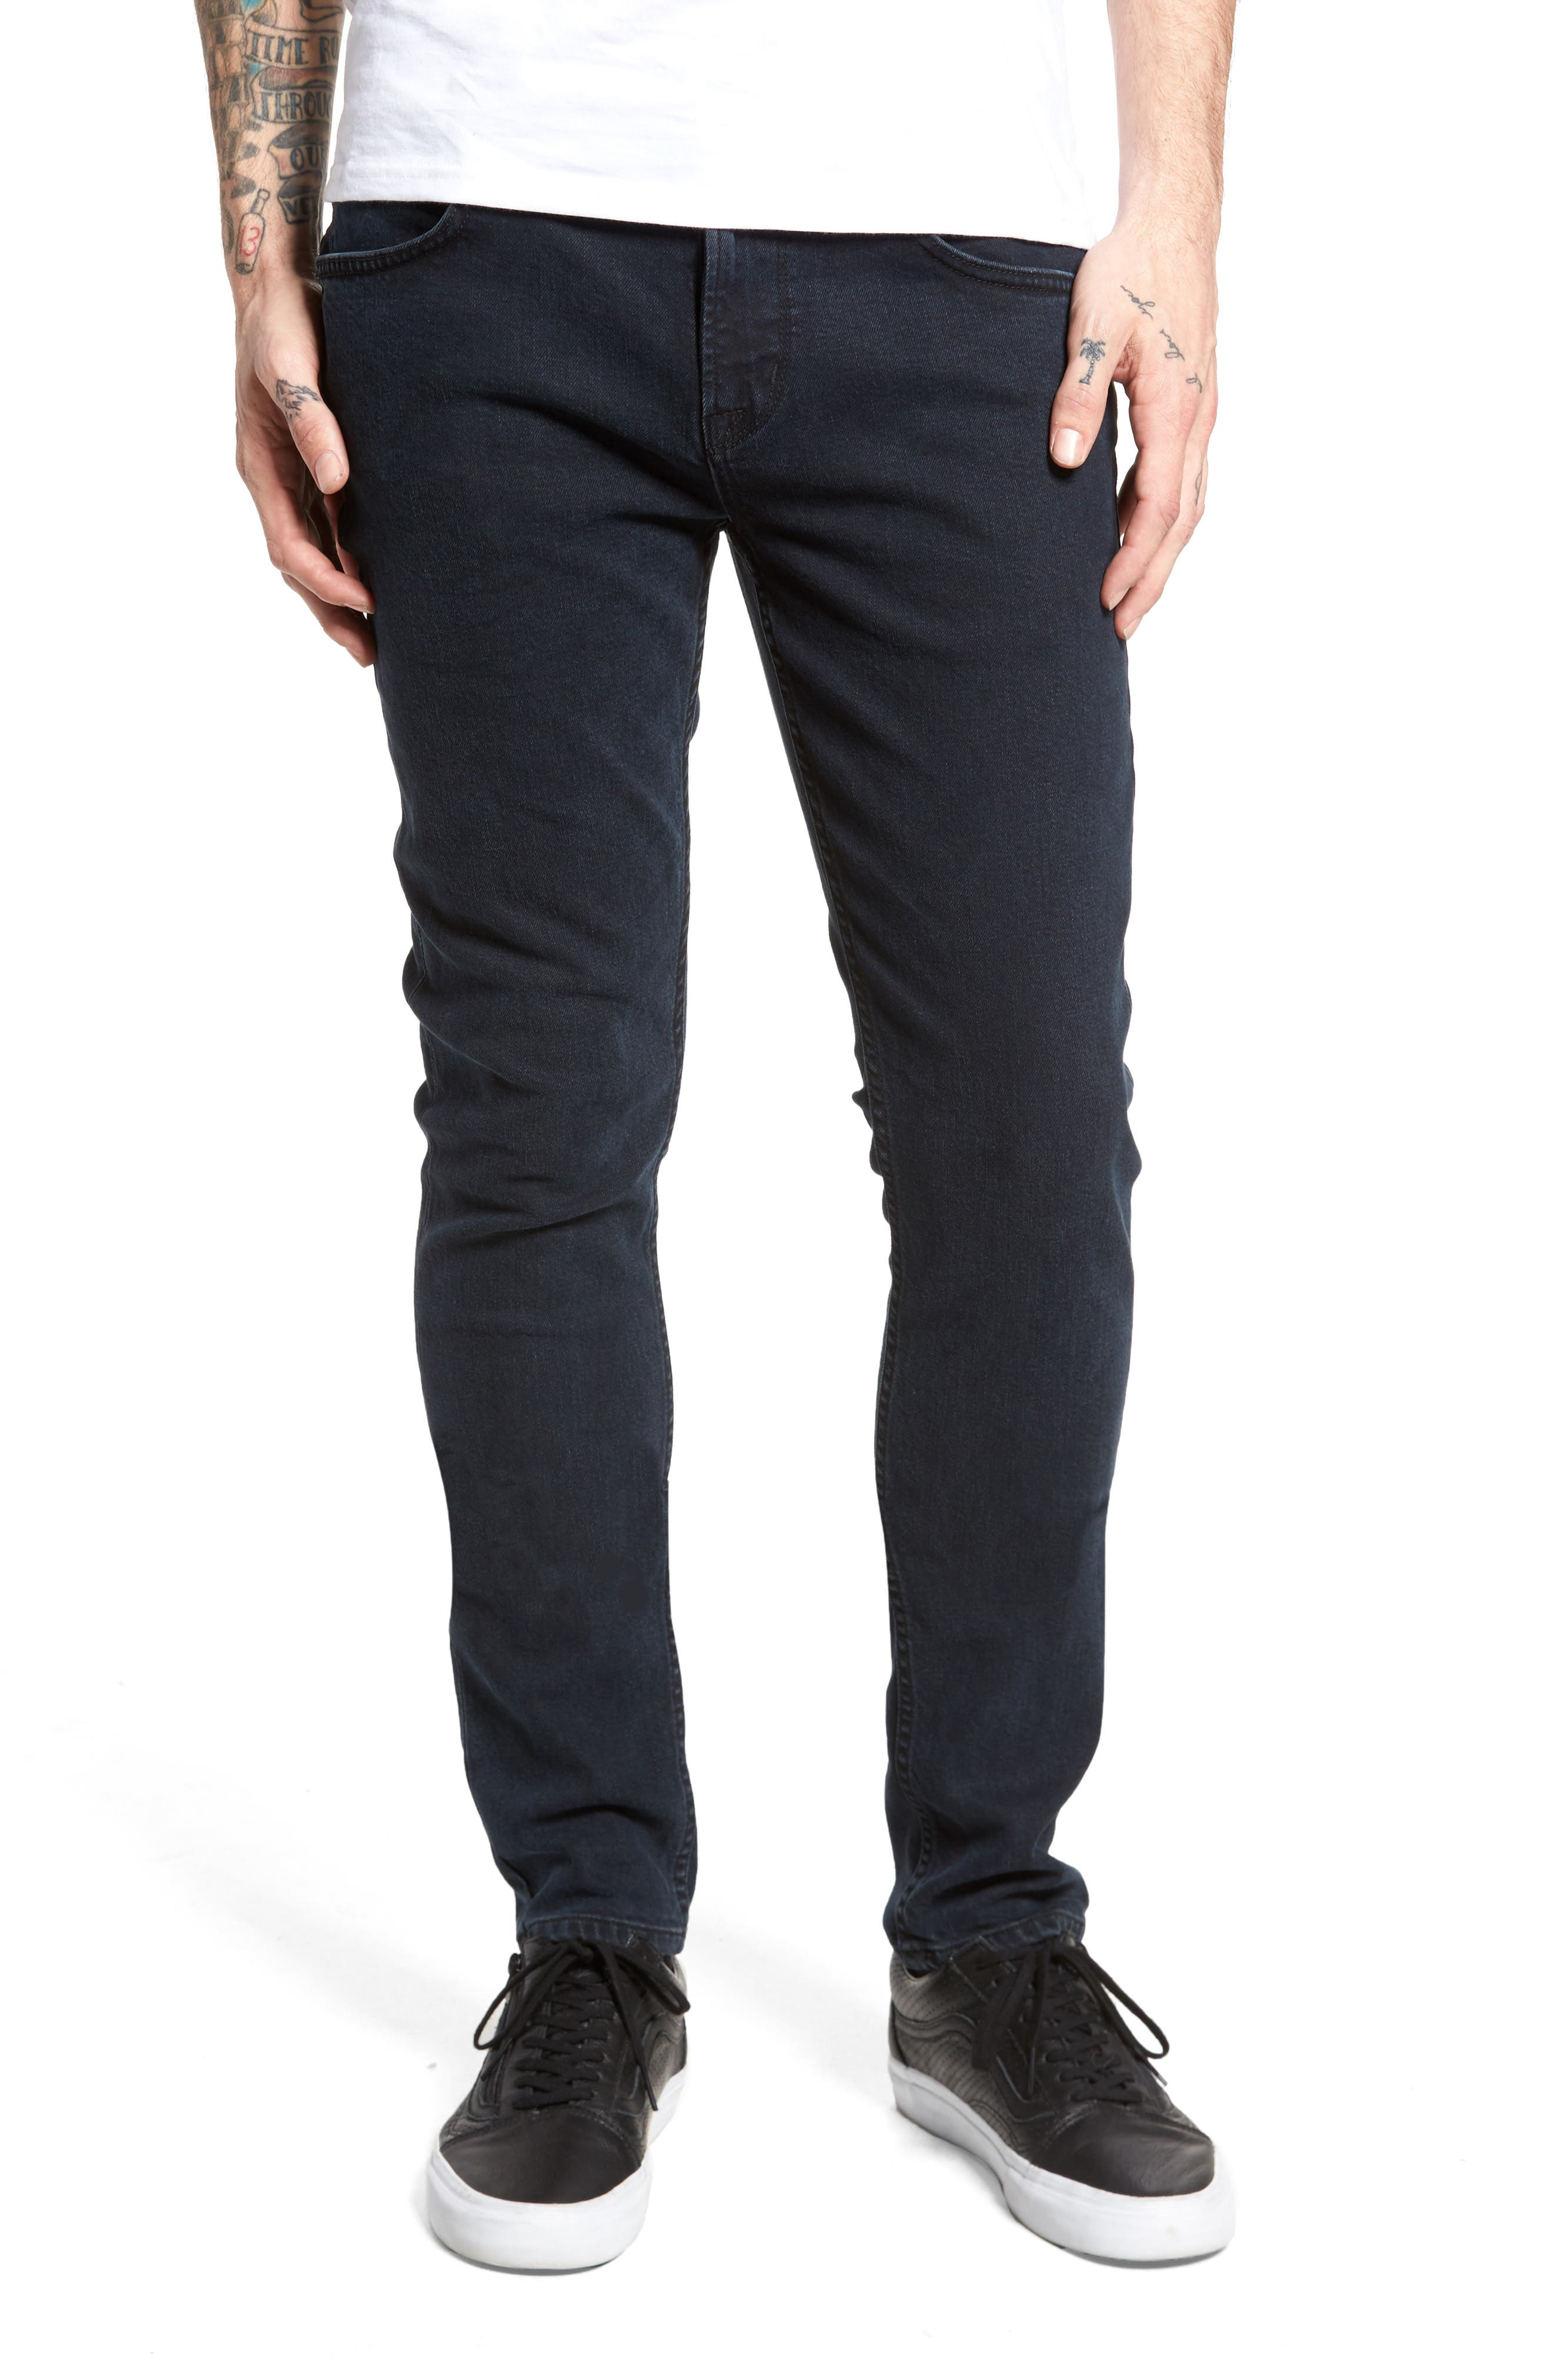 Axl Skinny Fit Jeans,                         Main,                         color,